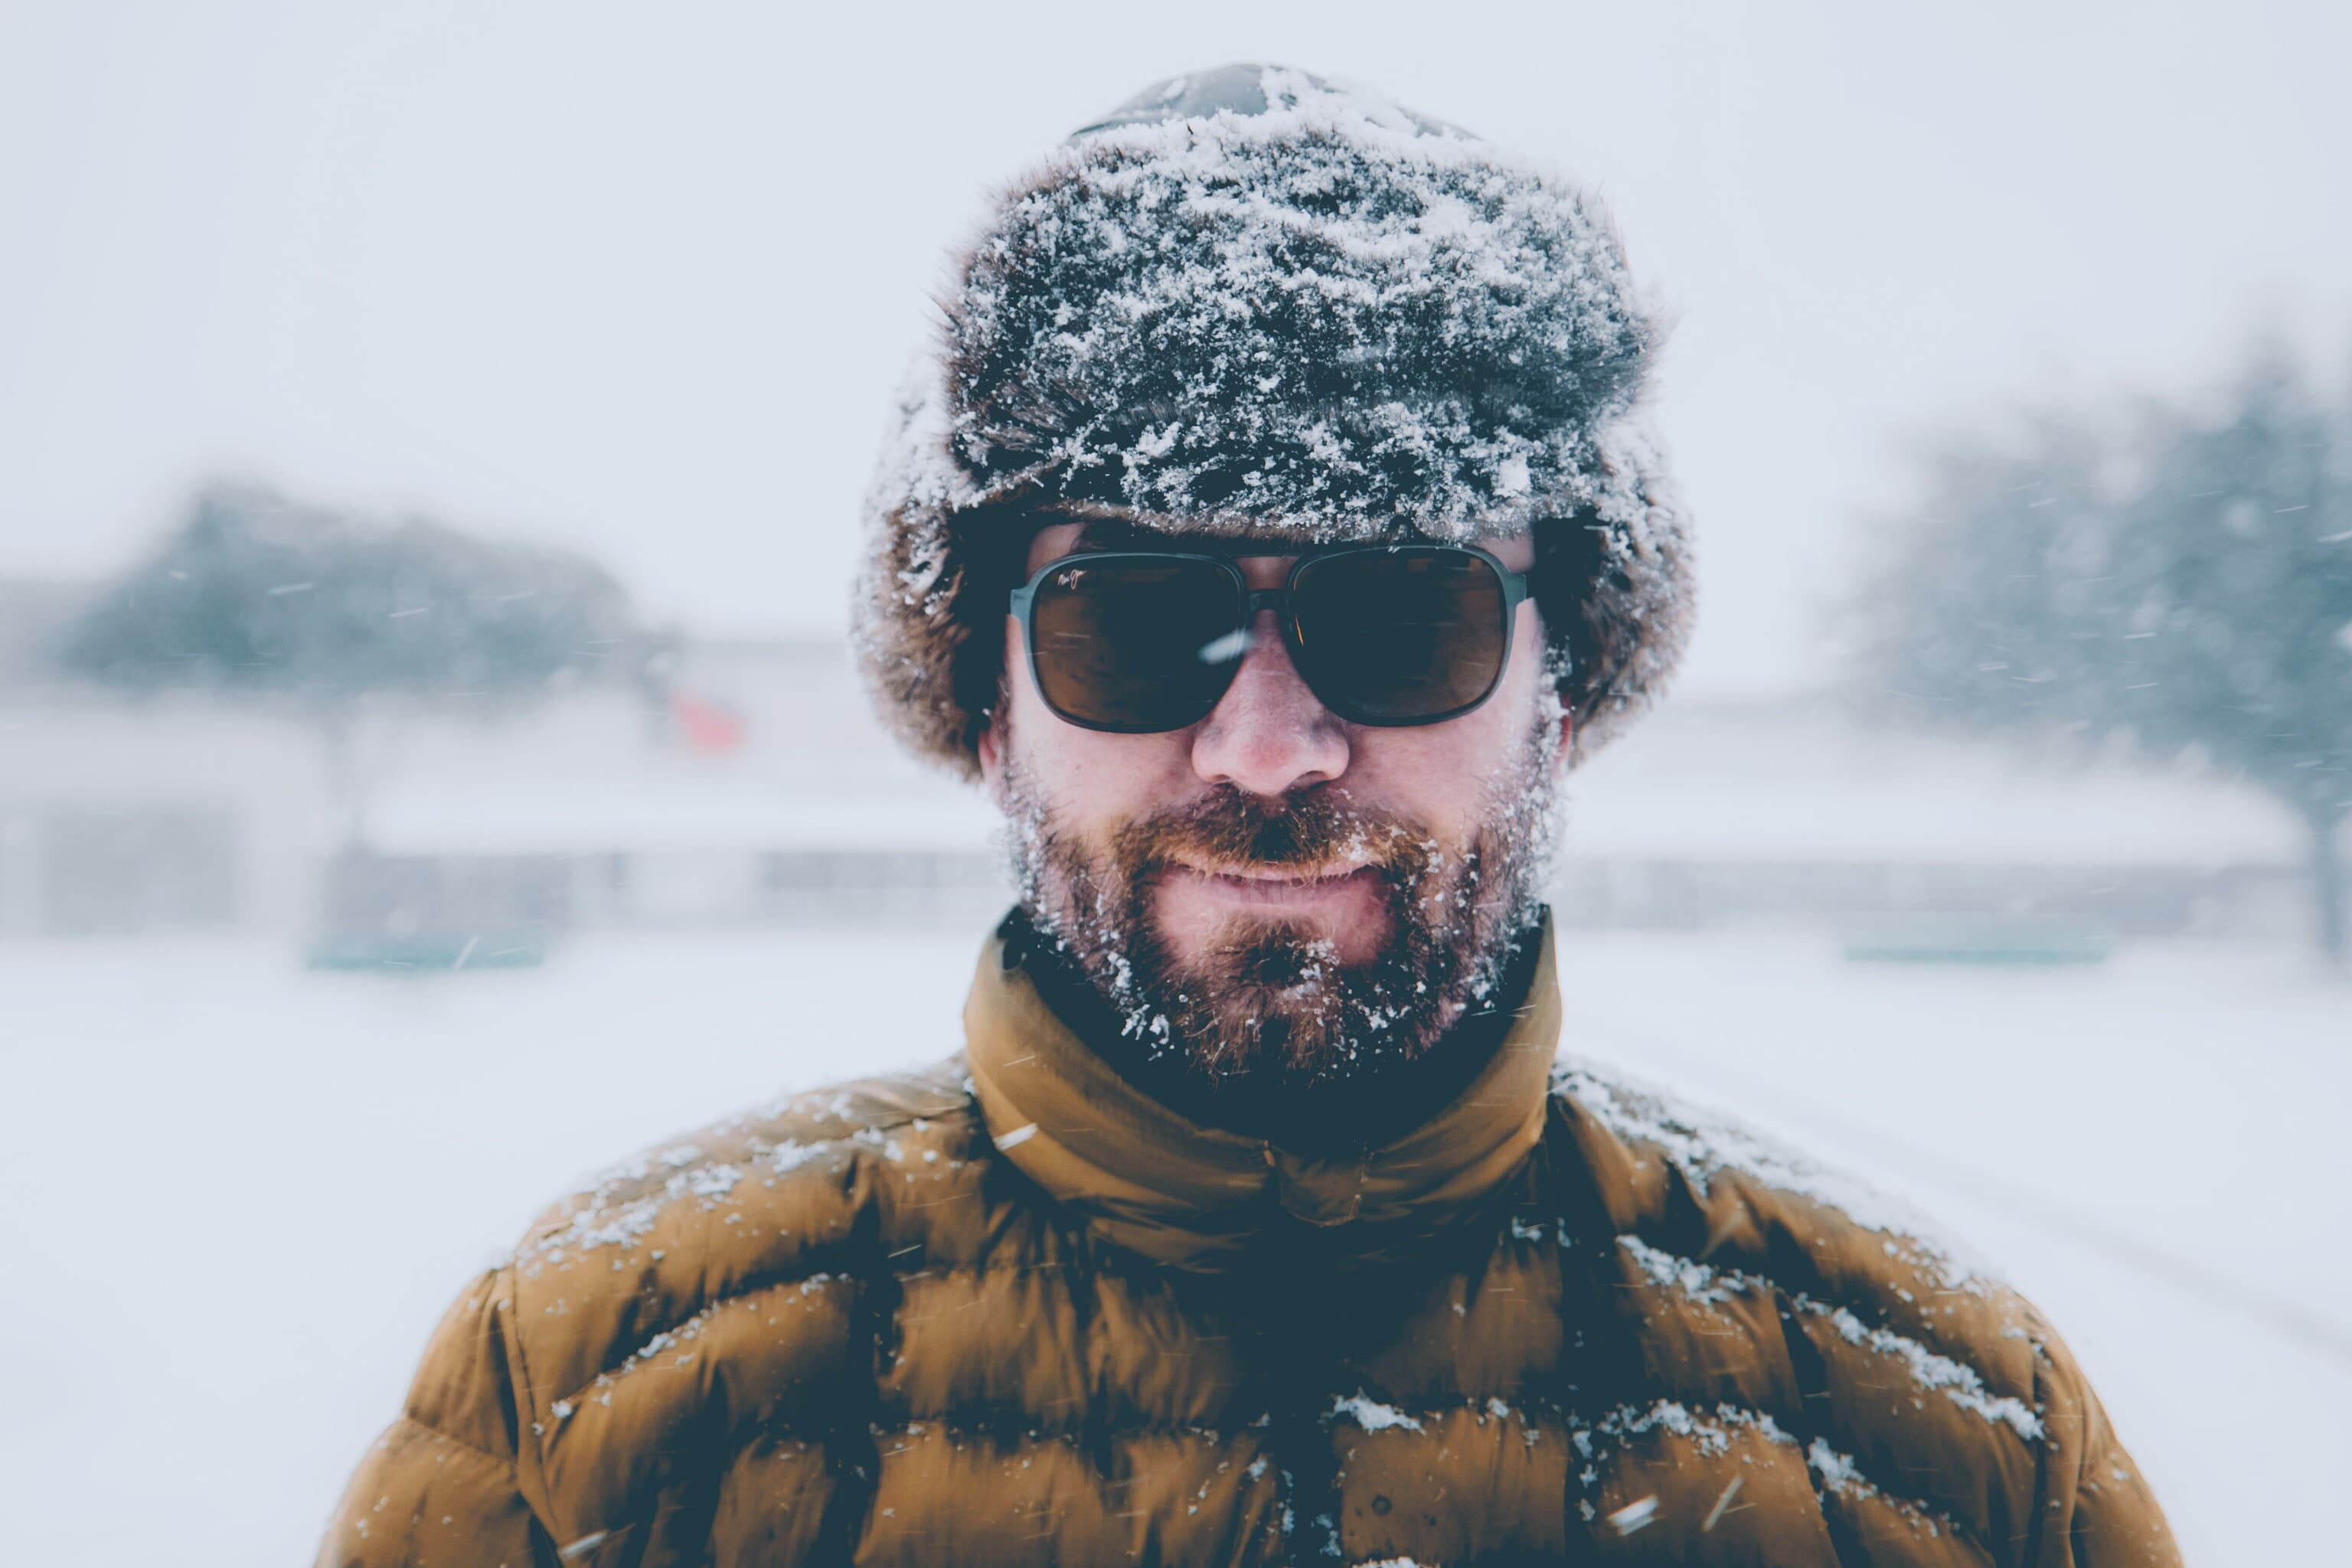 Man in furry hat with sunglasses in the snow